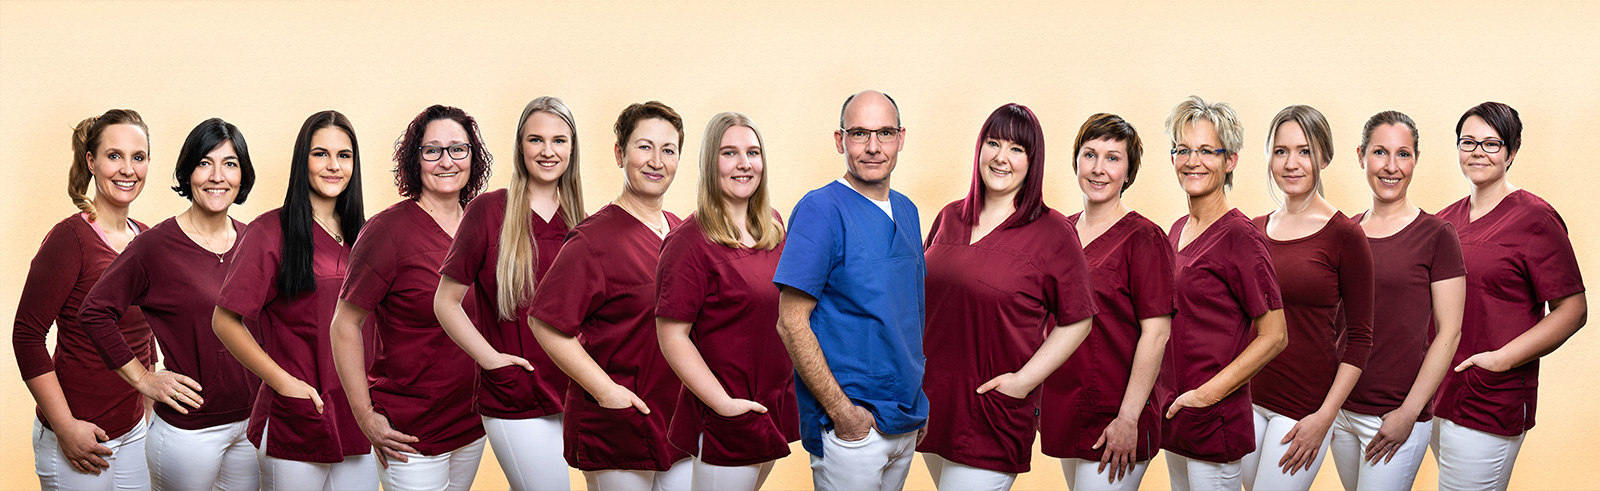 Team - Dr. med. Michael Geppert